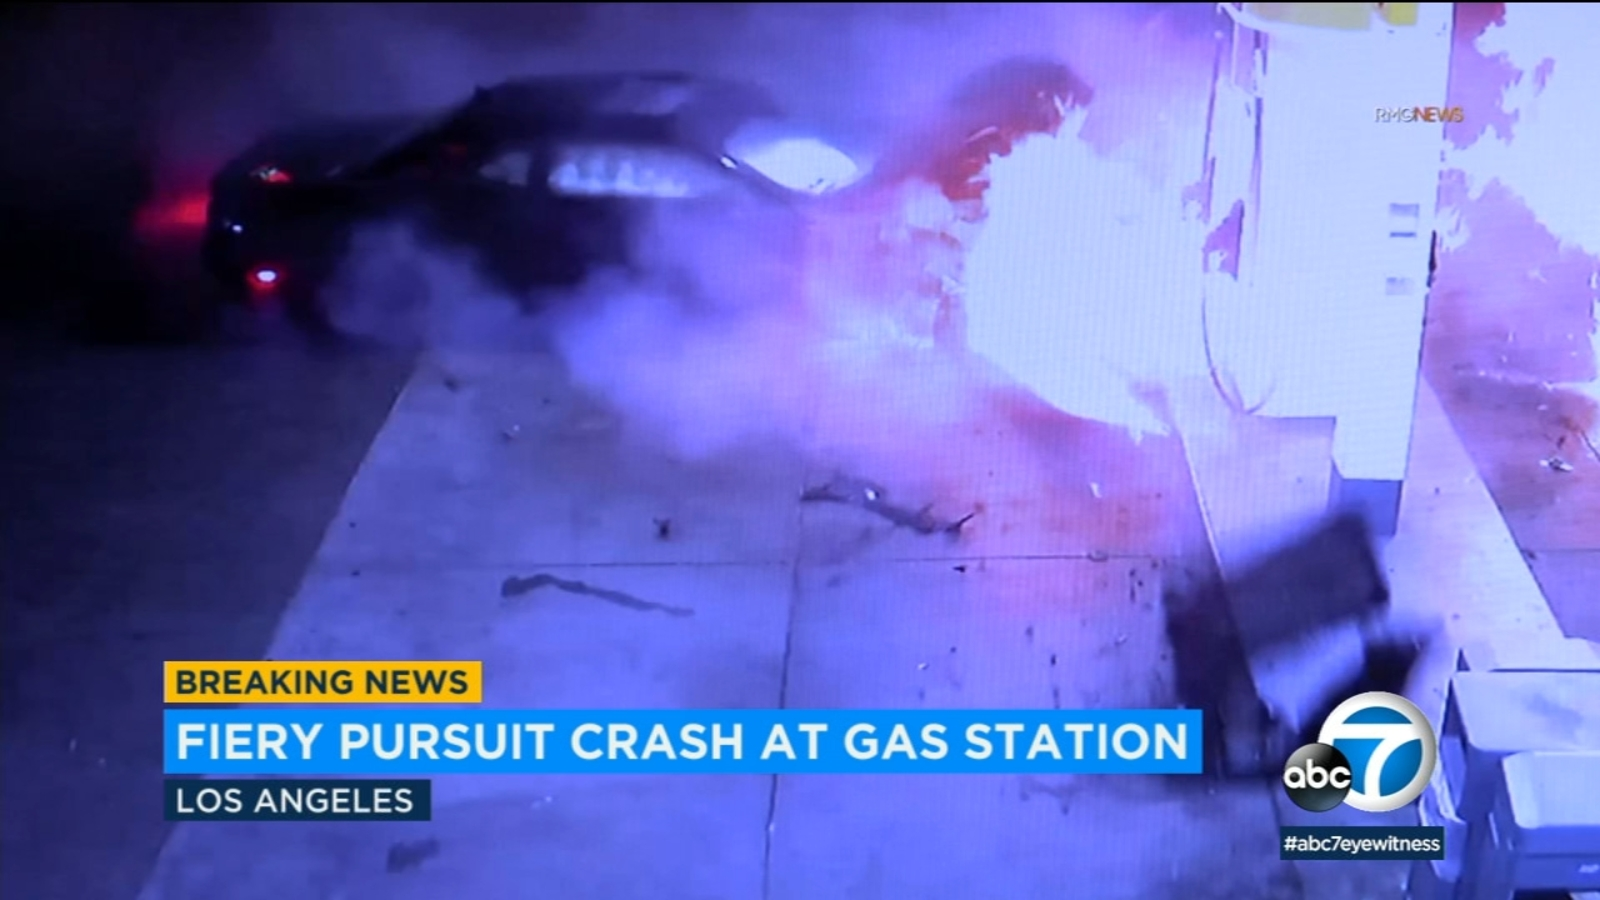 VIDEO: High-speed chase ends in fiery crash at Palms gas station